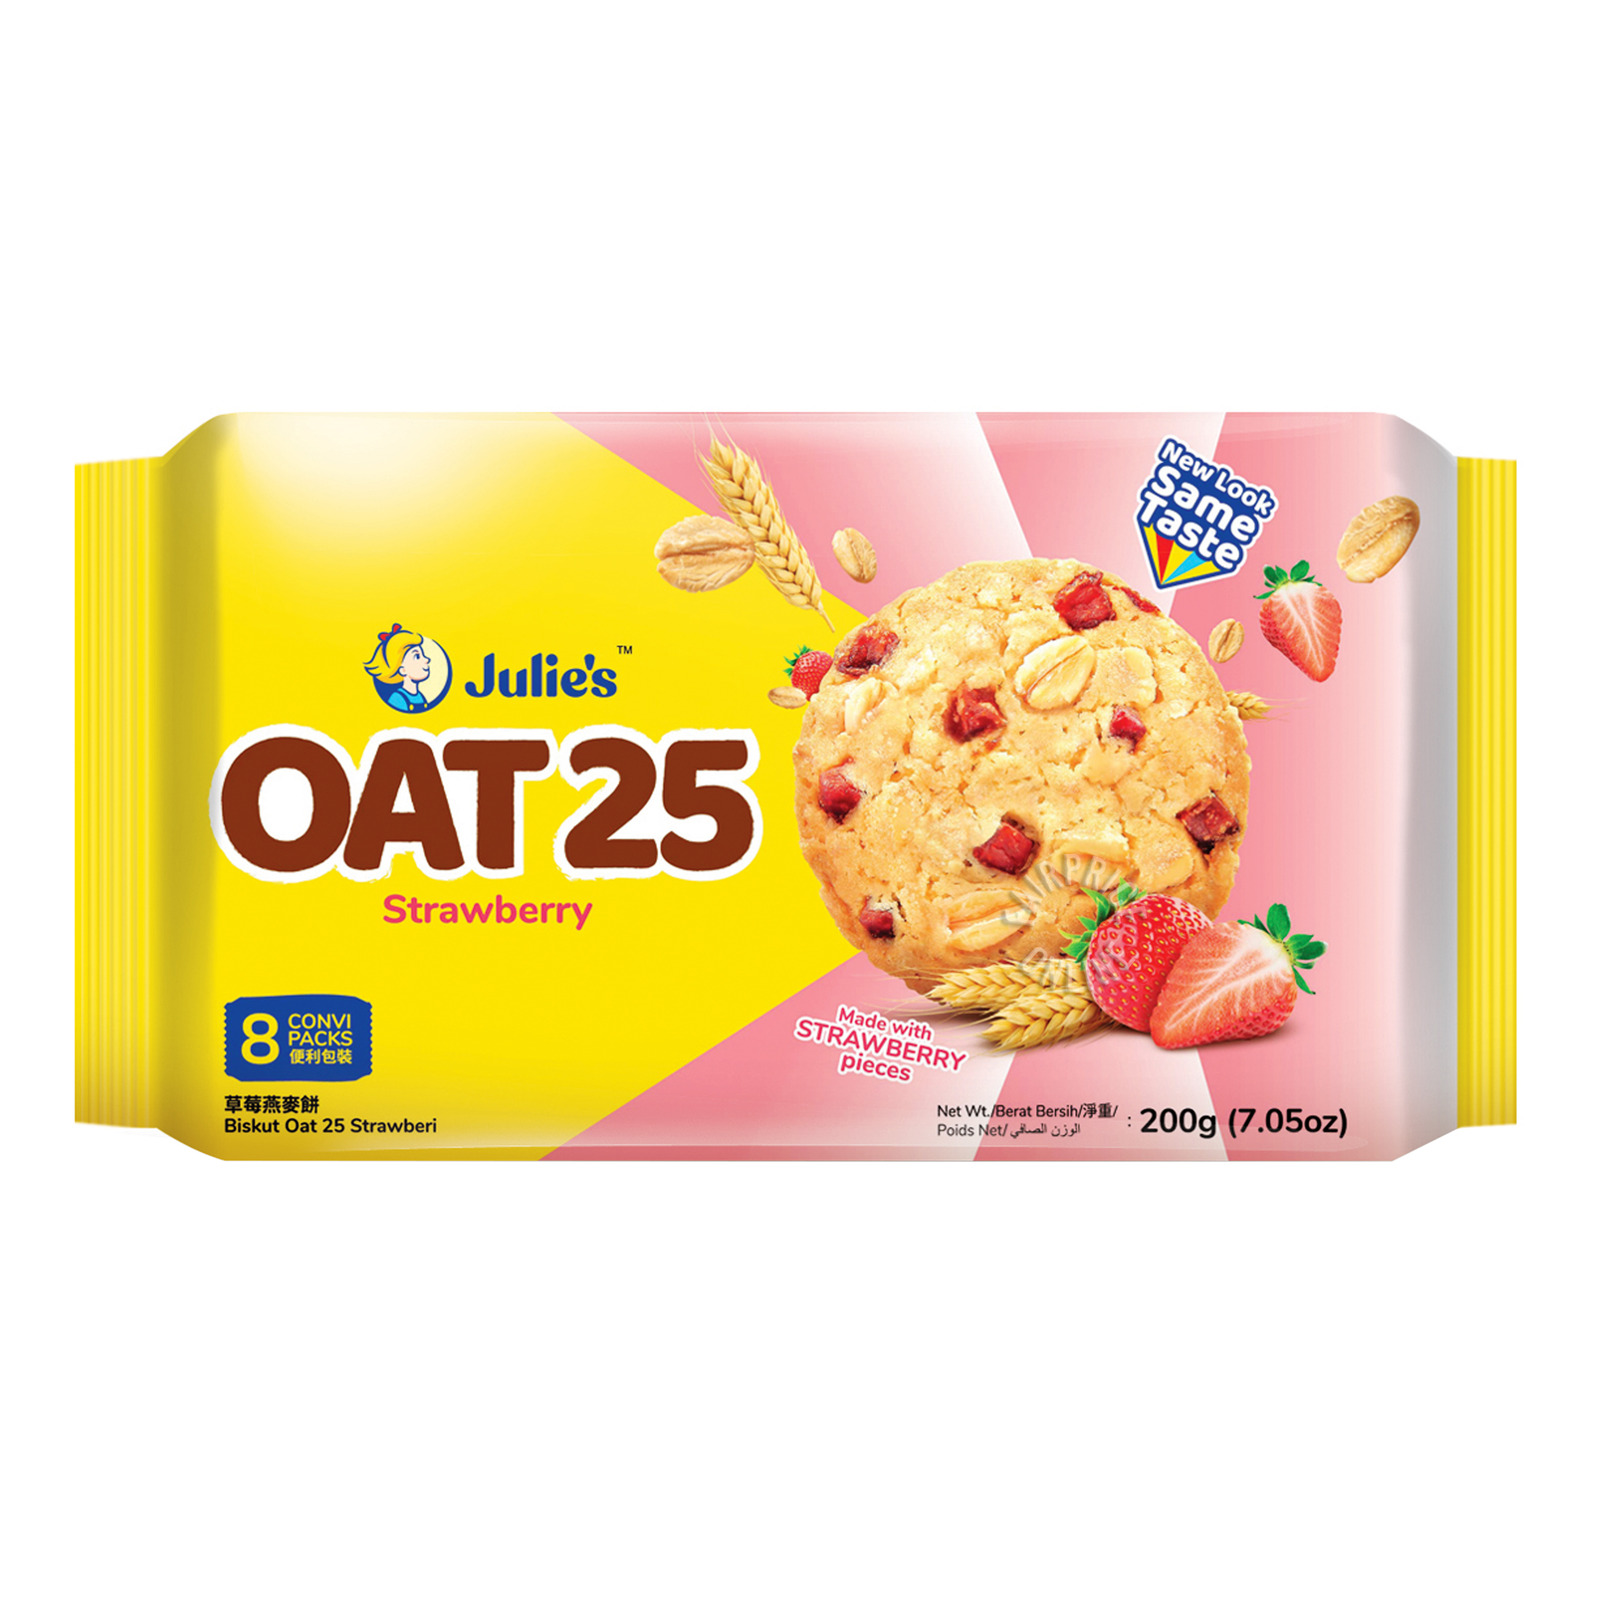 Julie's Oat 25 Cookies - Strawberry